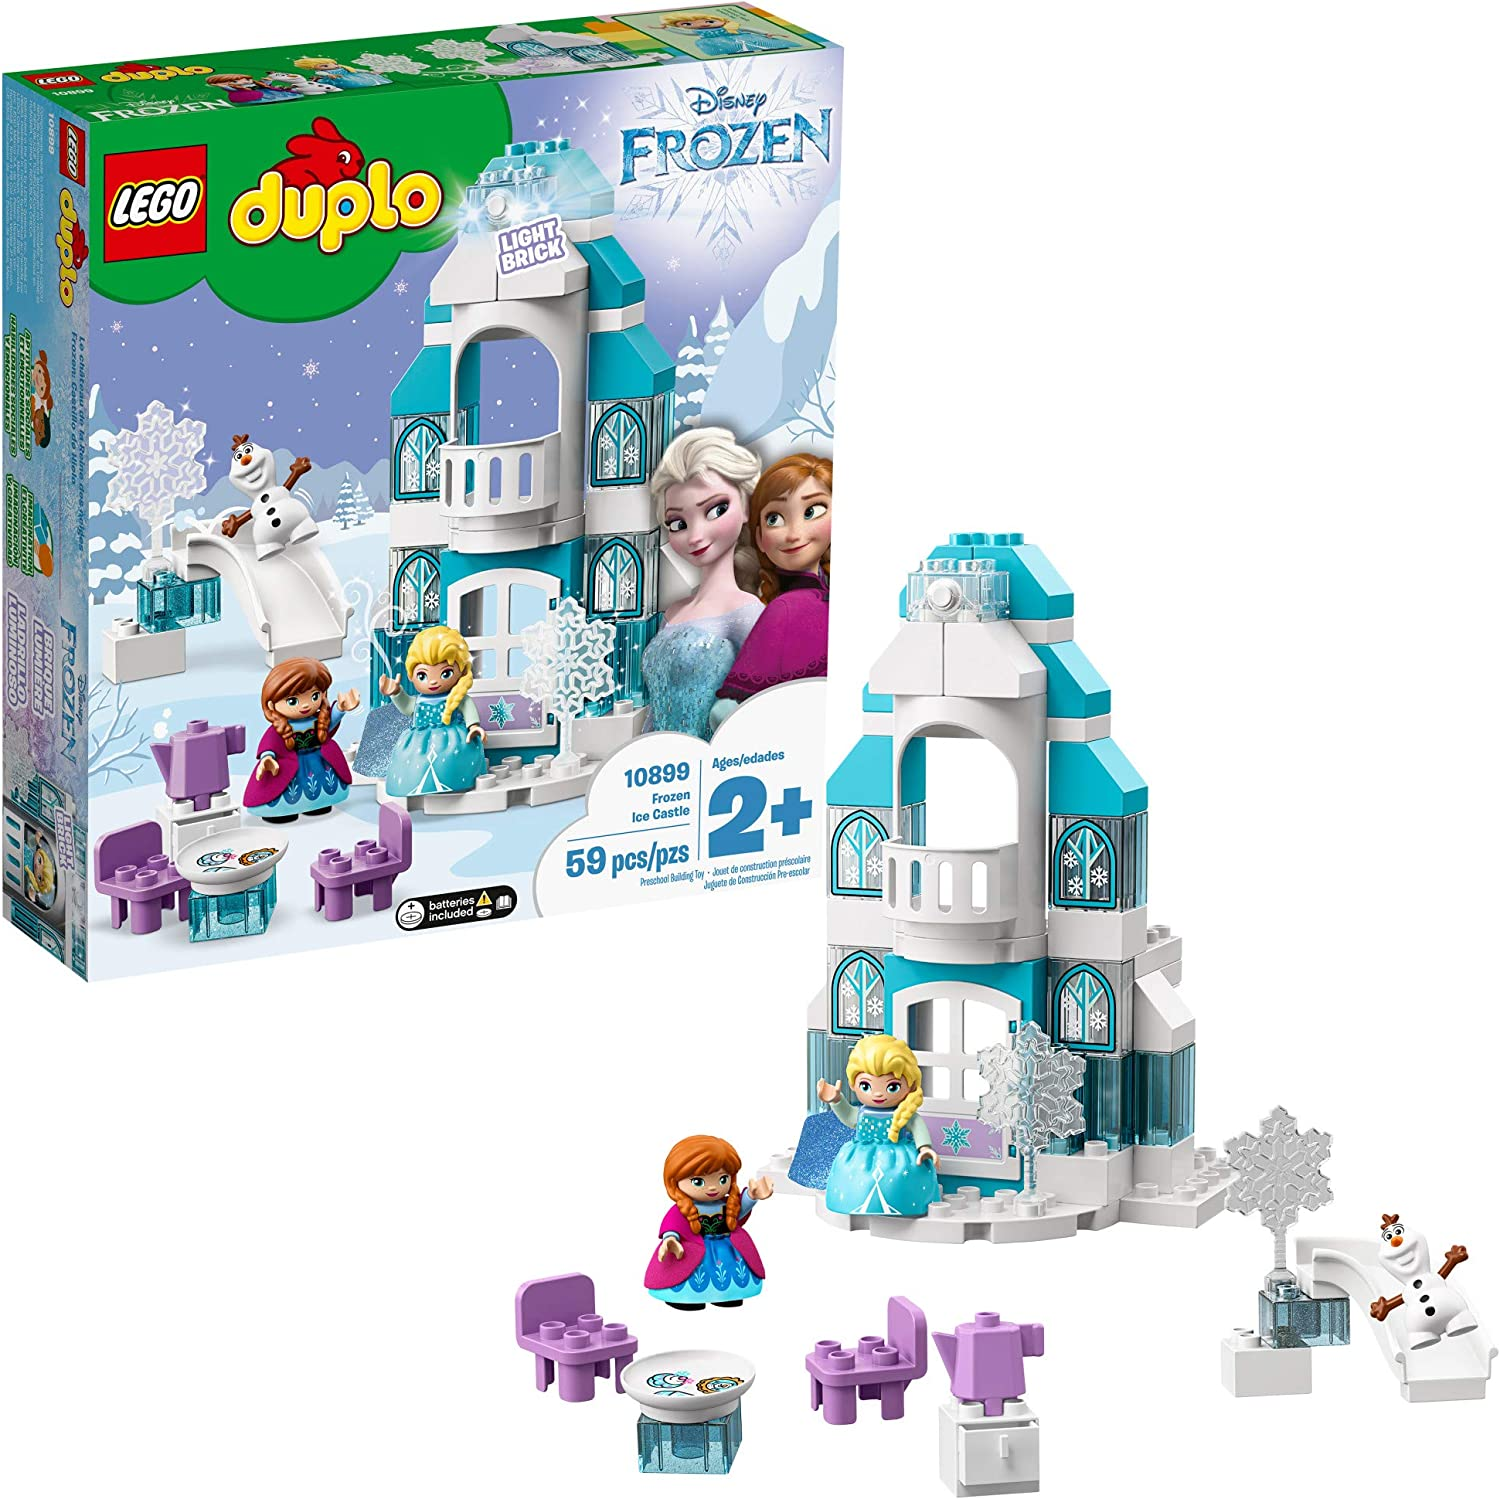 Lego Duplo Disney Frozen Ice Castle 10899 Building Blocks 59 Pieces Toys Games